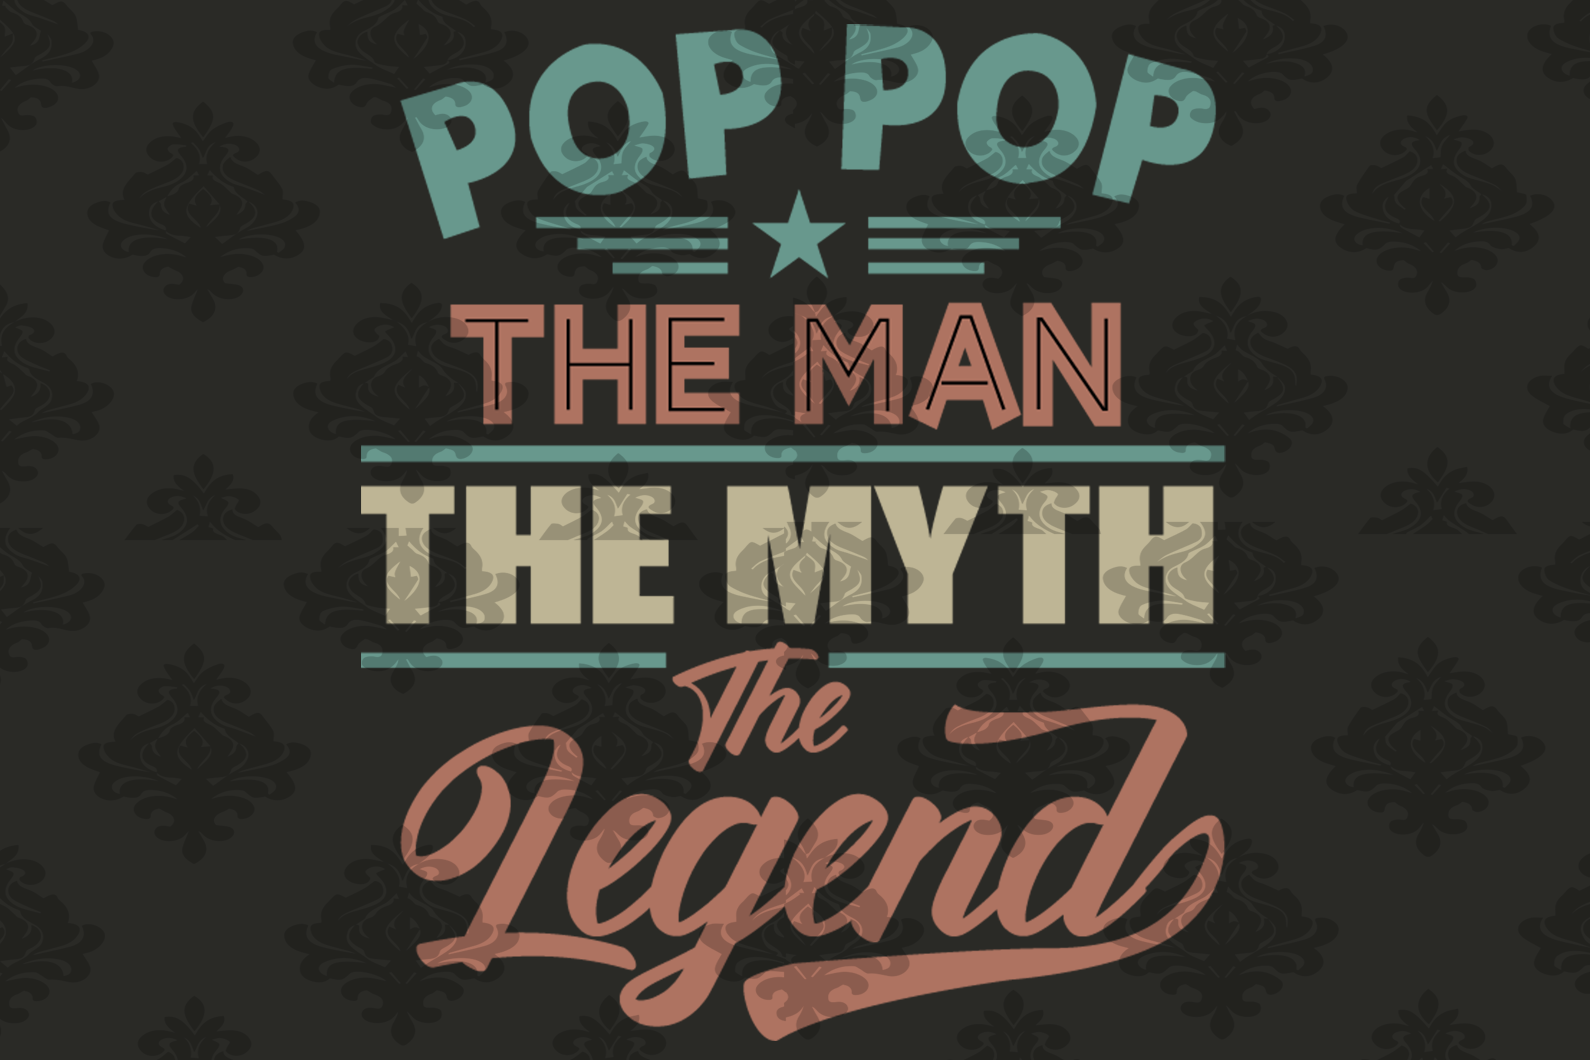 Pop pop theman the myth the legend svg,fathers day svg, fathers day gift,happy fathers day,father gif t,fathers day shirt, gift for popop,happy fathers day gift,popop svg,love popop